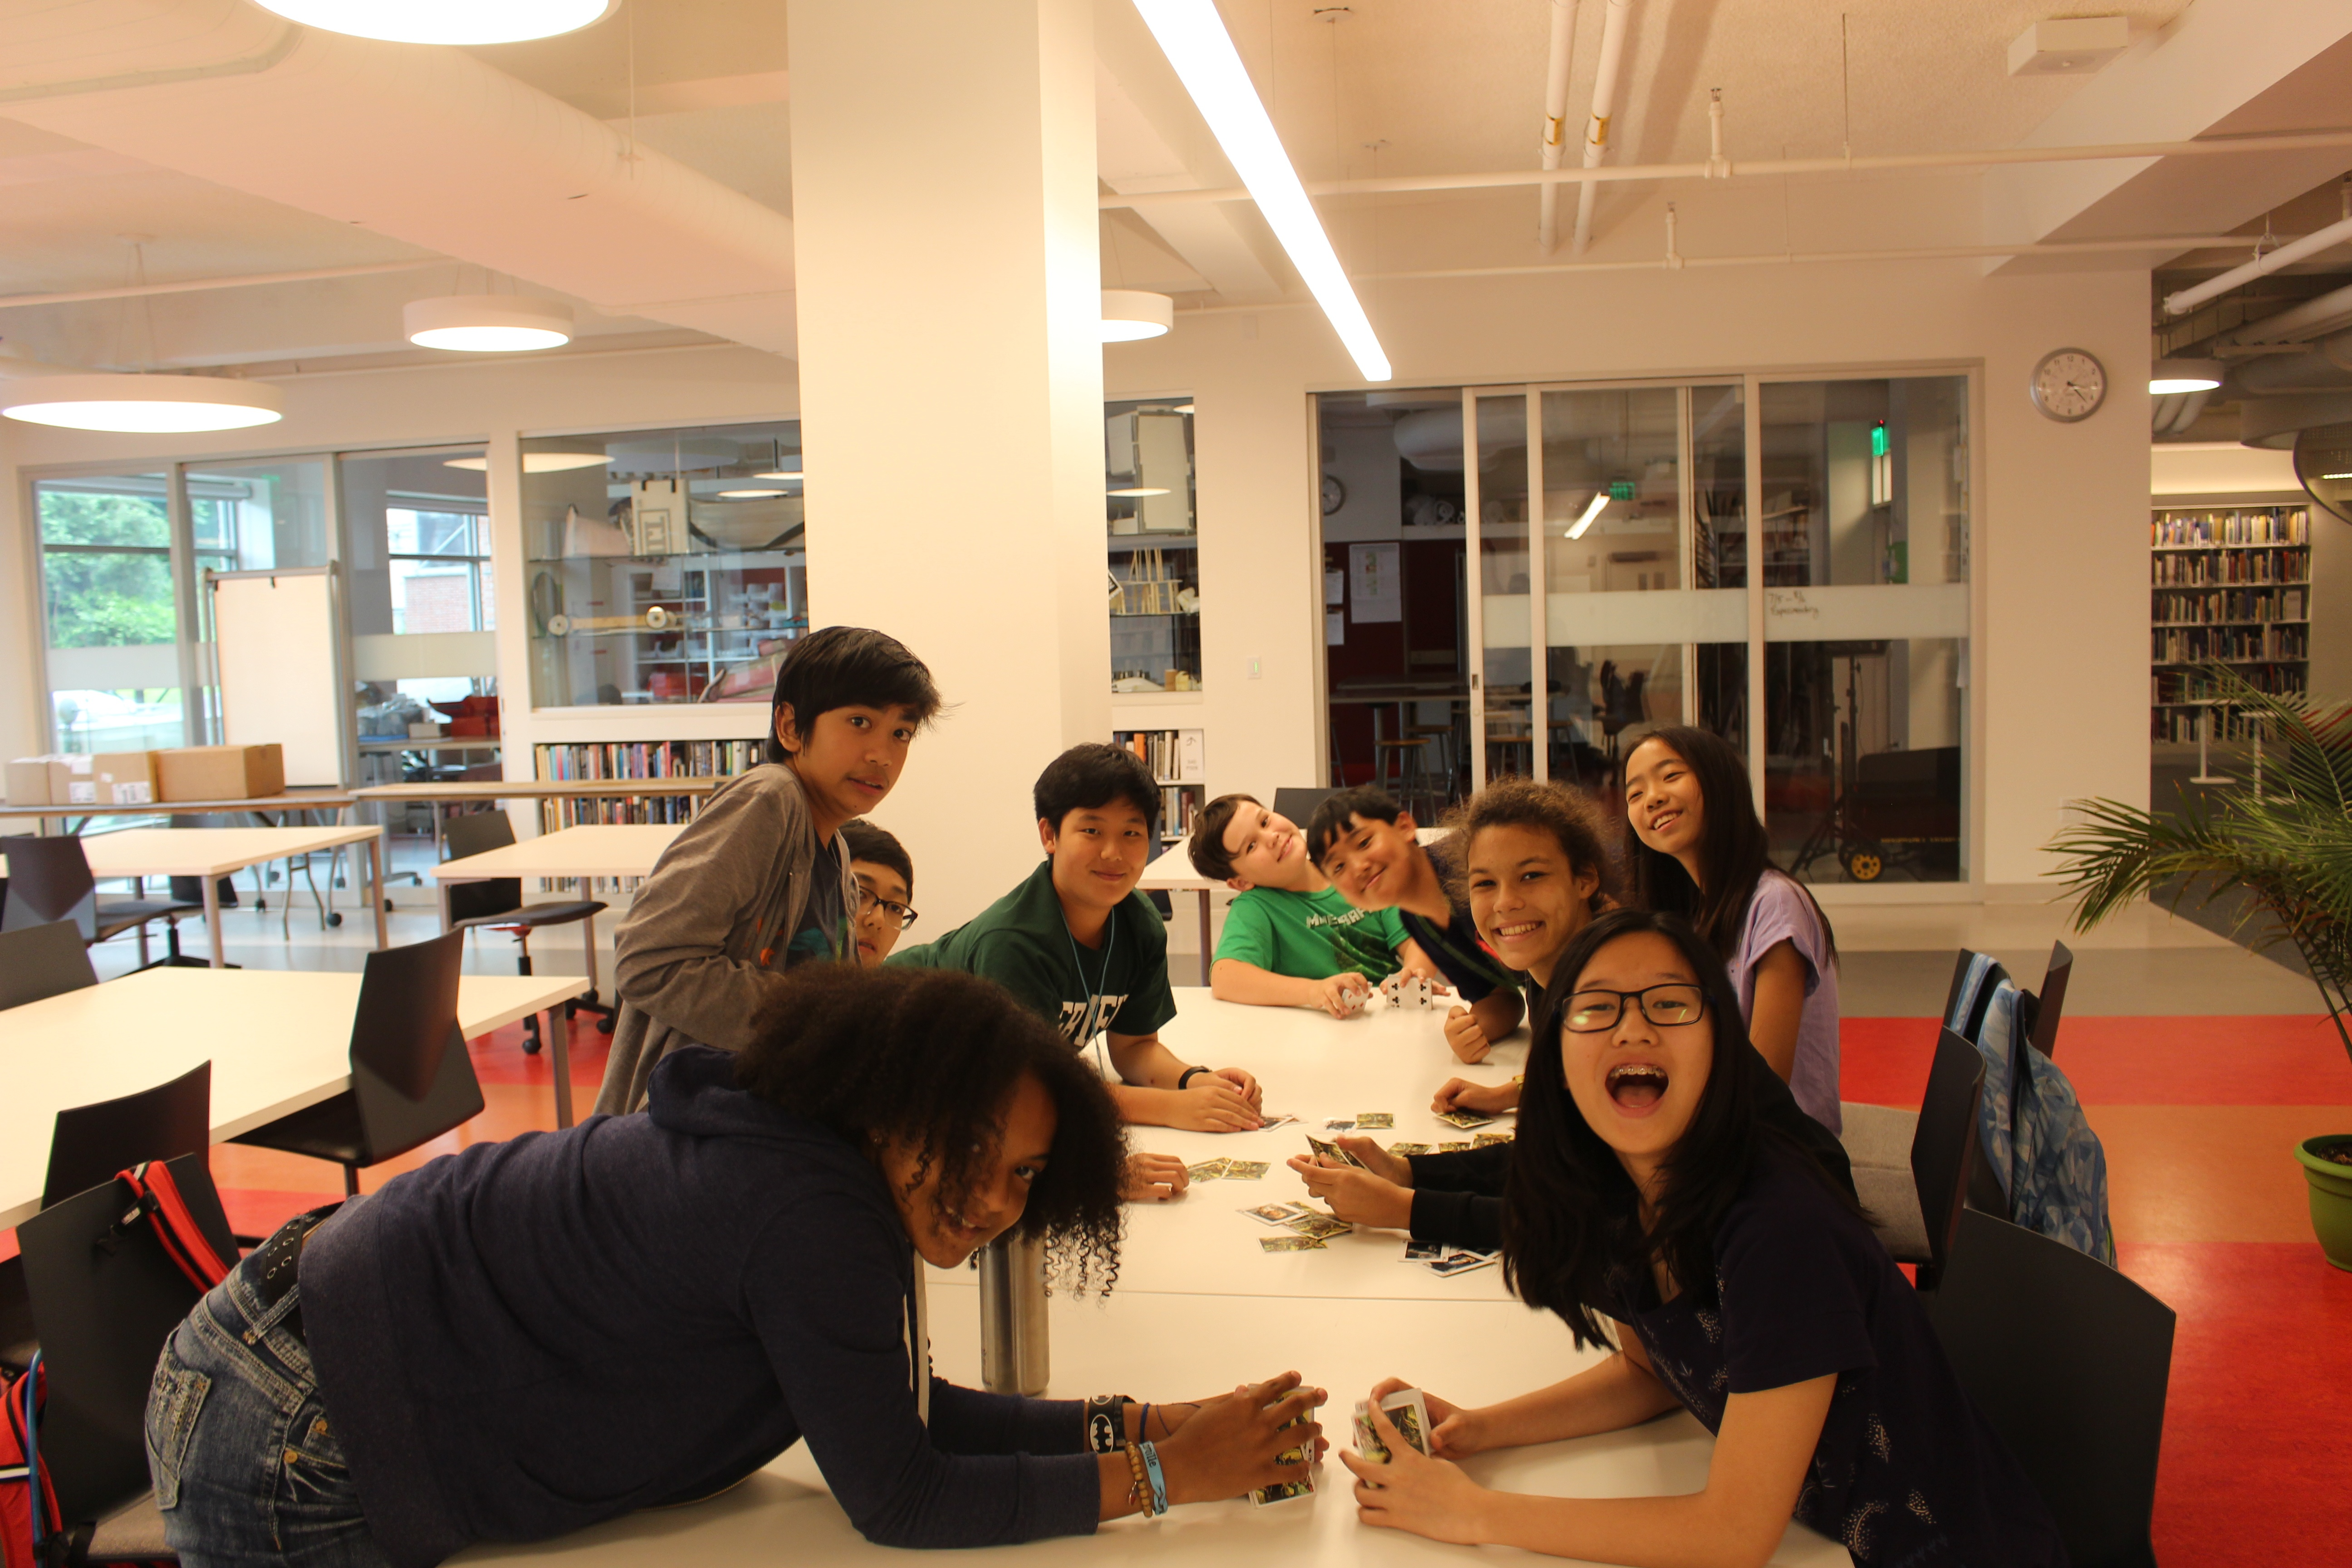 Students enjoying the Library space during freetime.